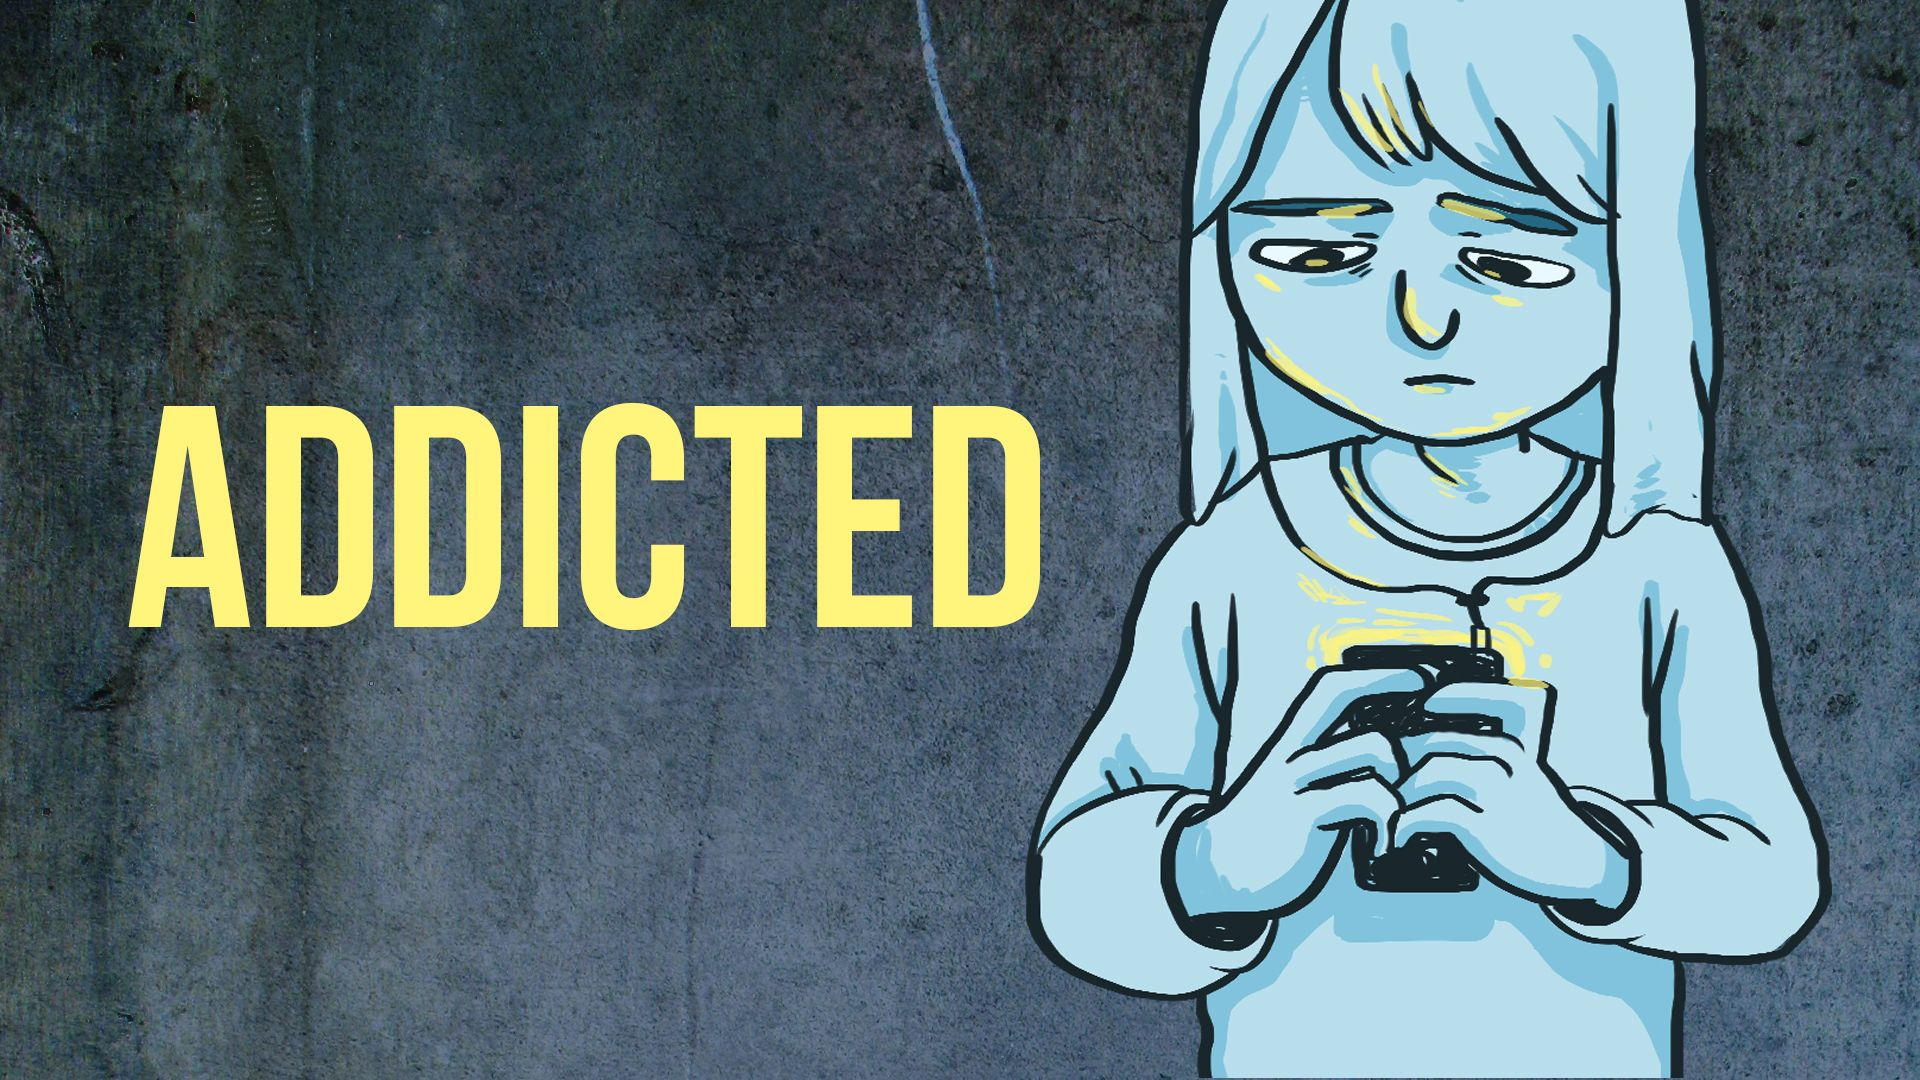 Addicted Kids